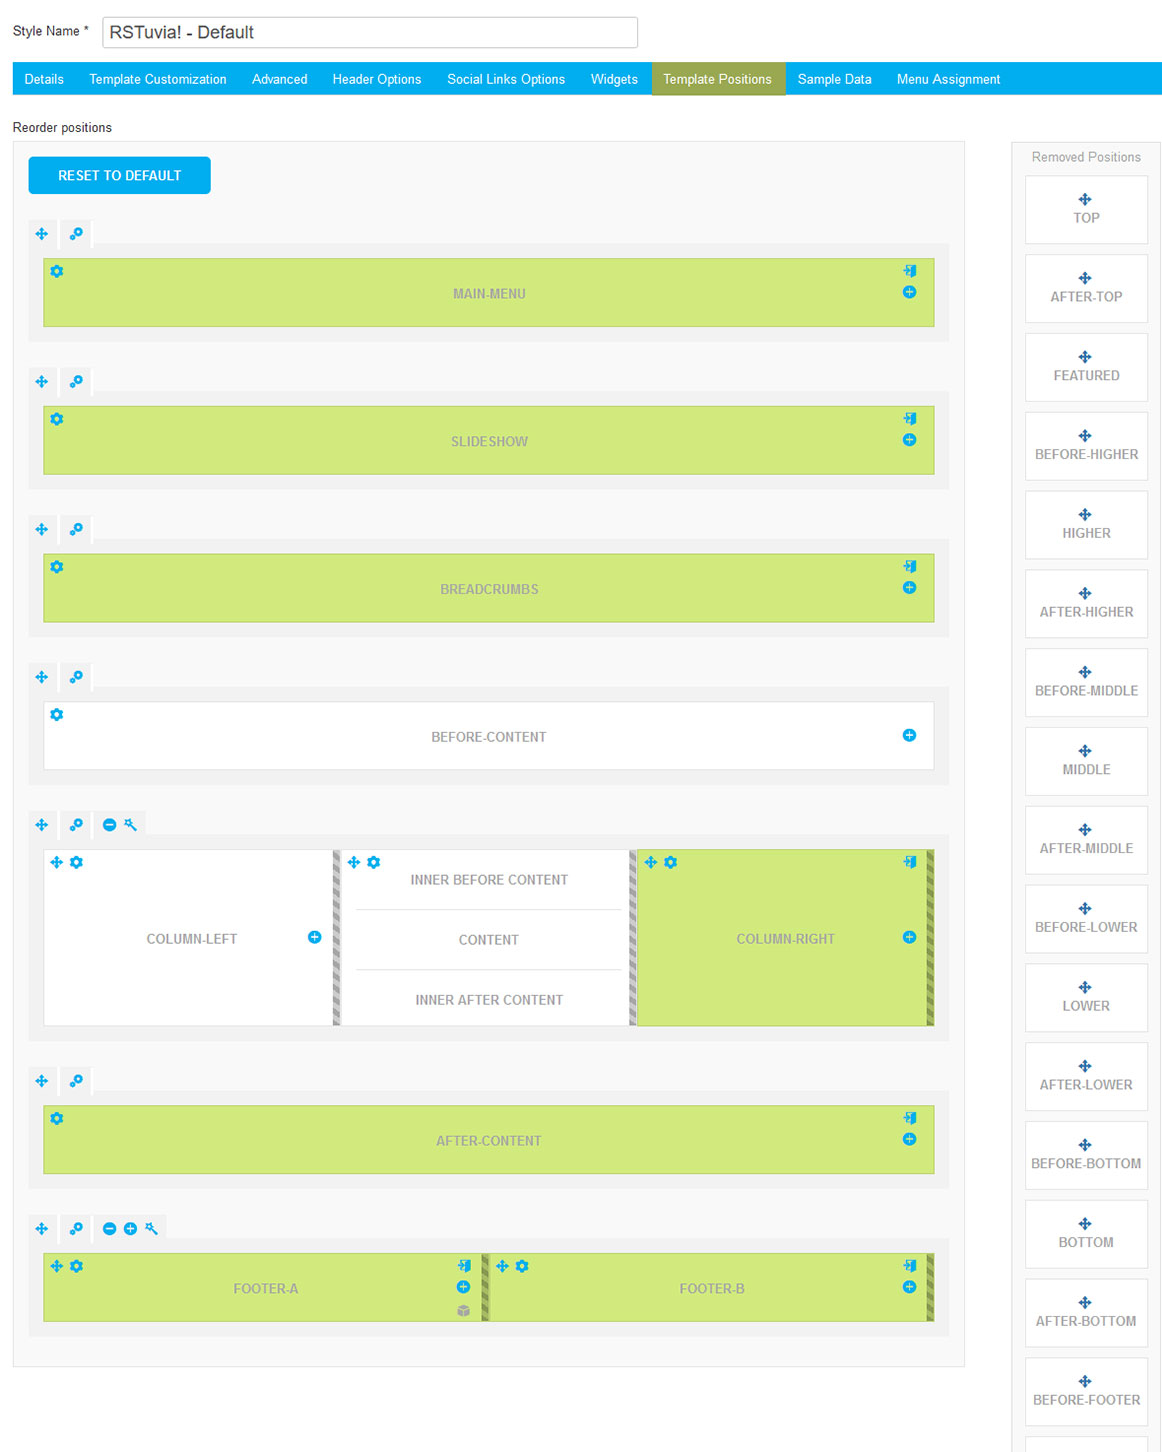 RSTuvia! Joomla! 3.x template Template Positions Tab preview